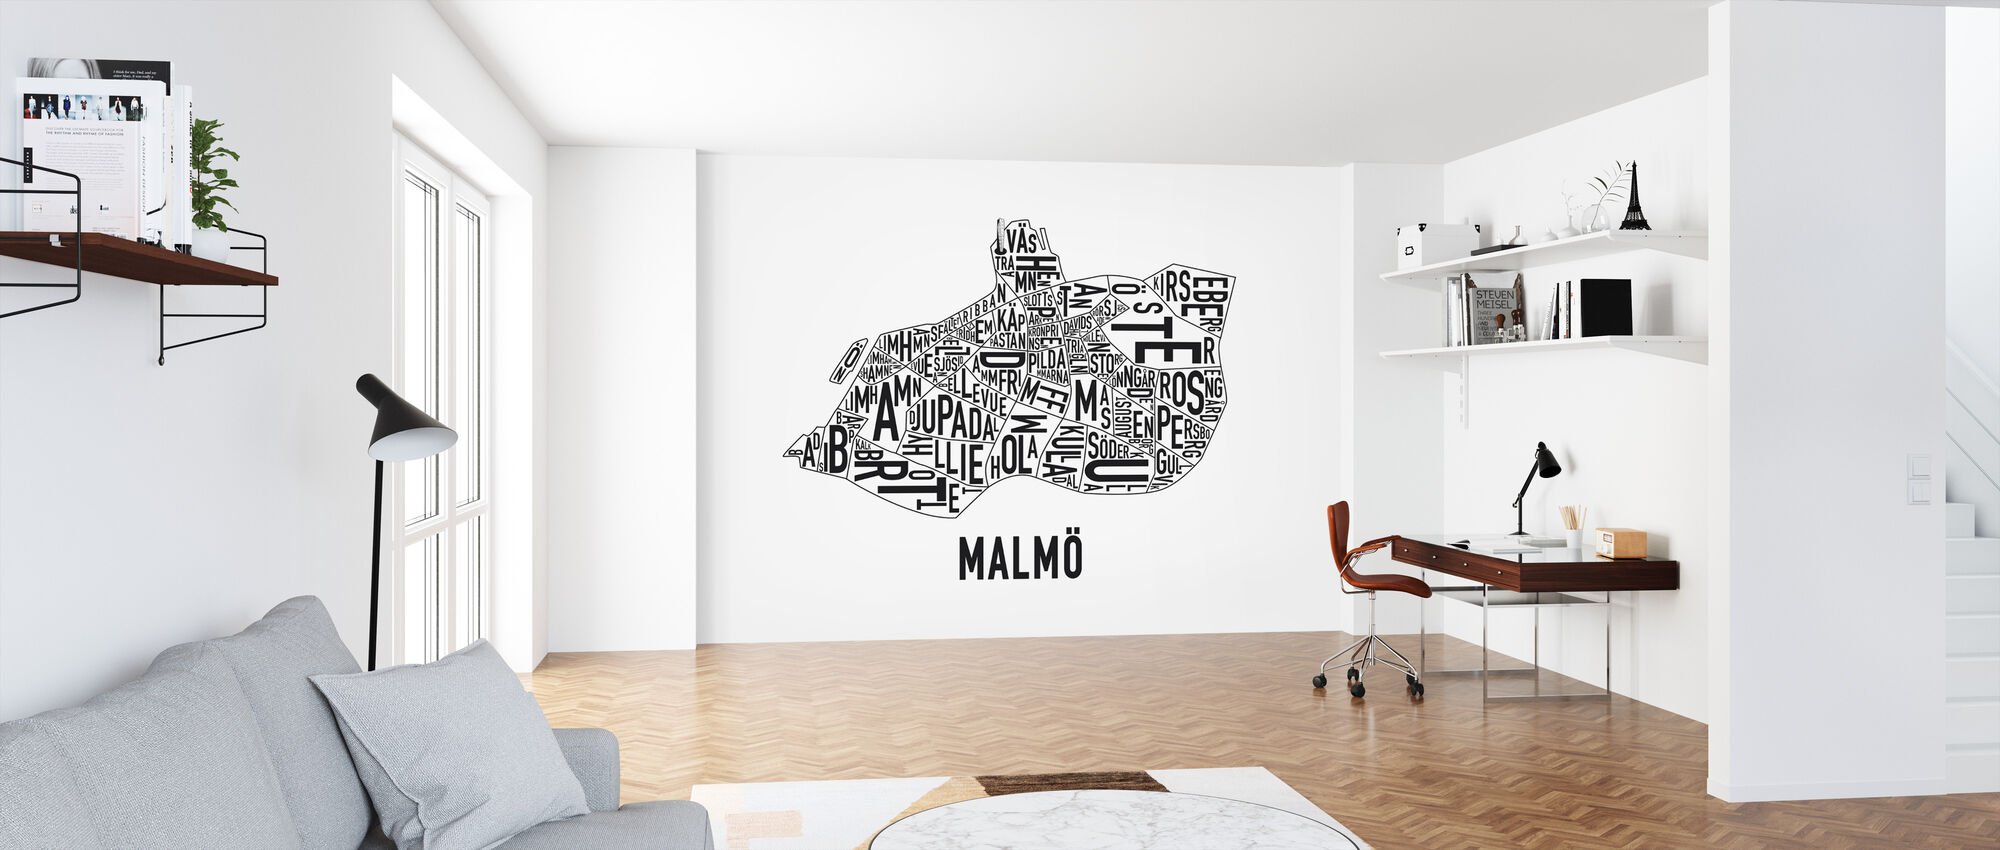 Malmö - Wallpaper - Office